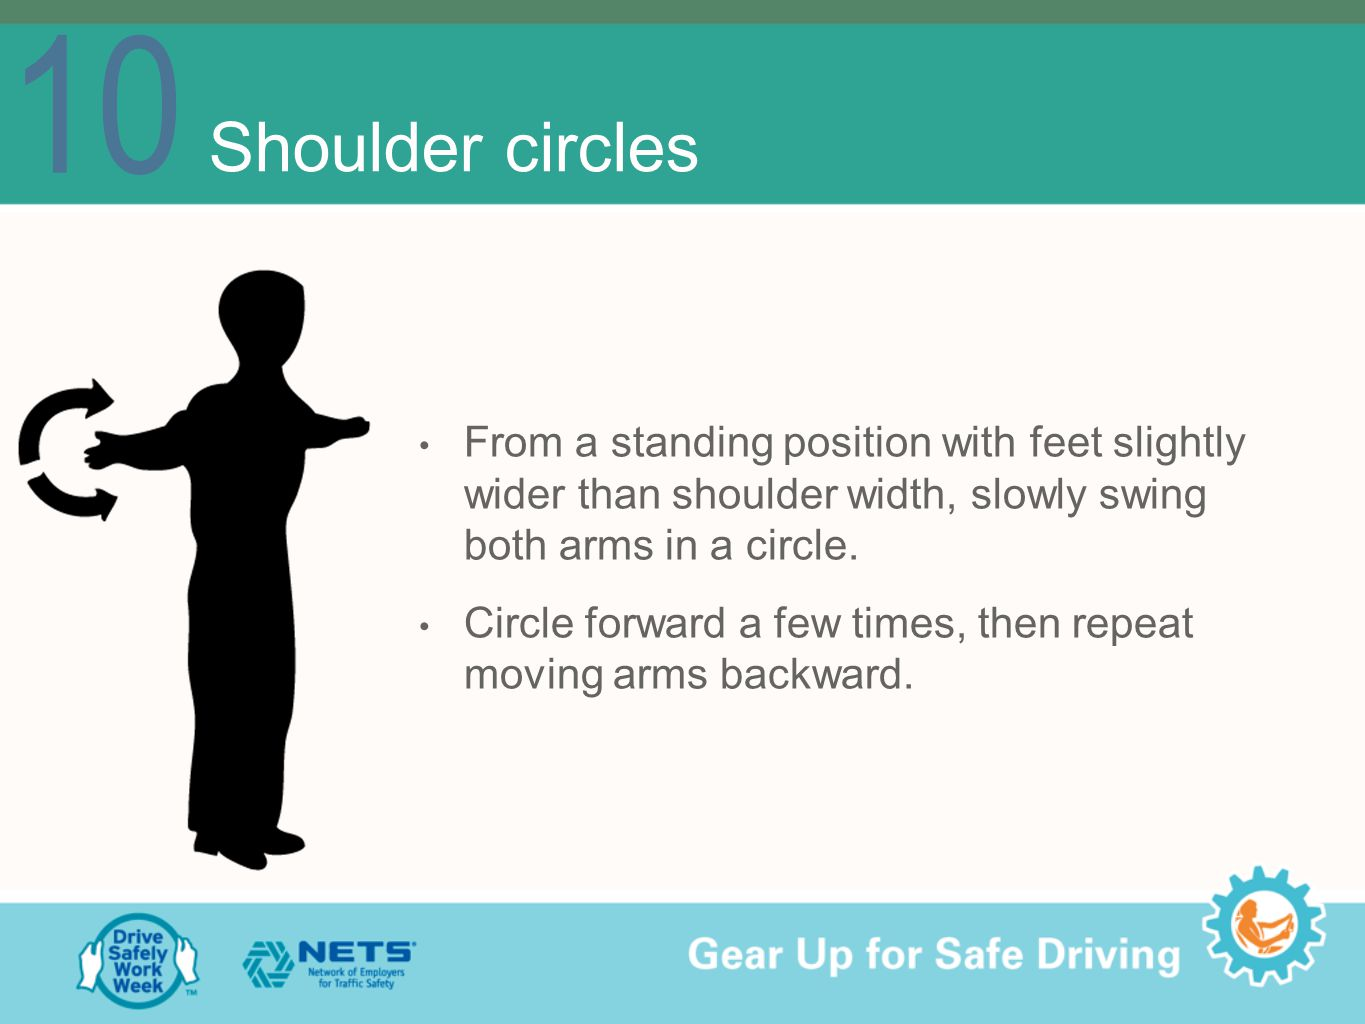 10 Shoulder circles From a standing position with feet slightly wider than shoulder width, slowly swing both arms in a circle.